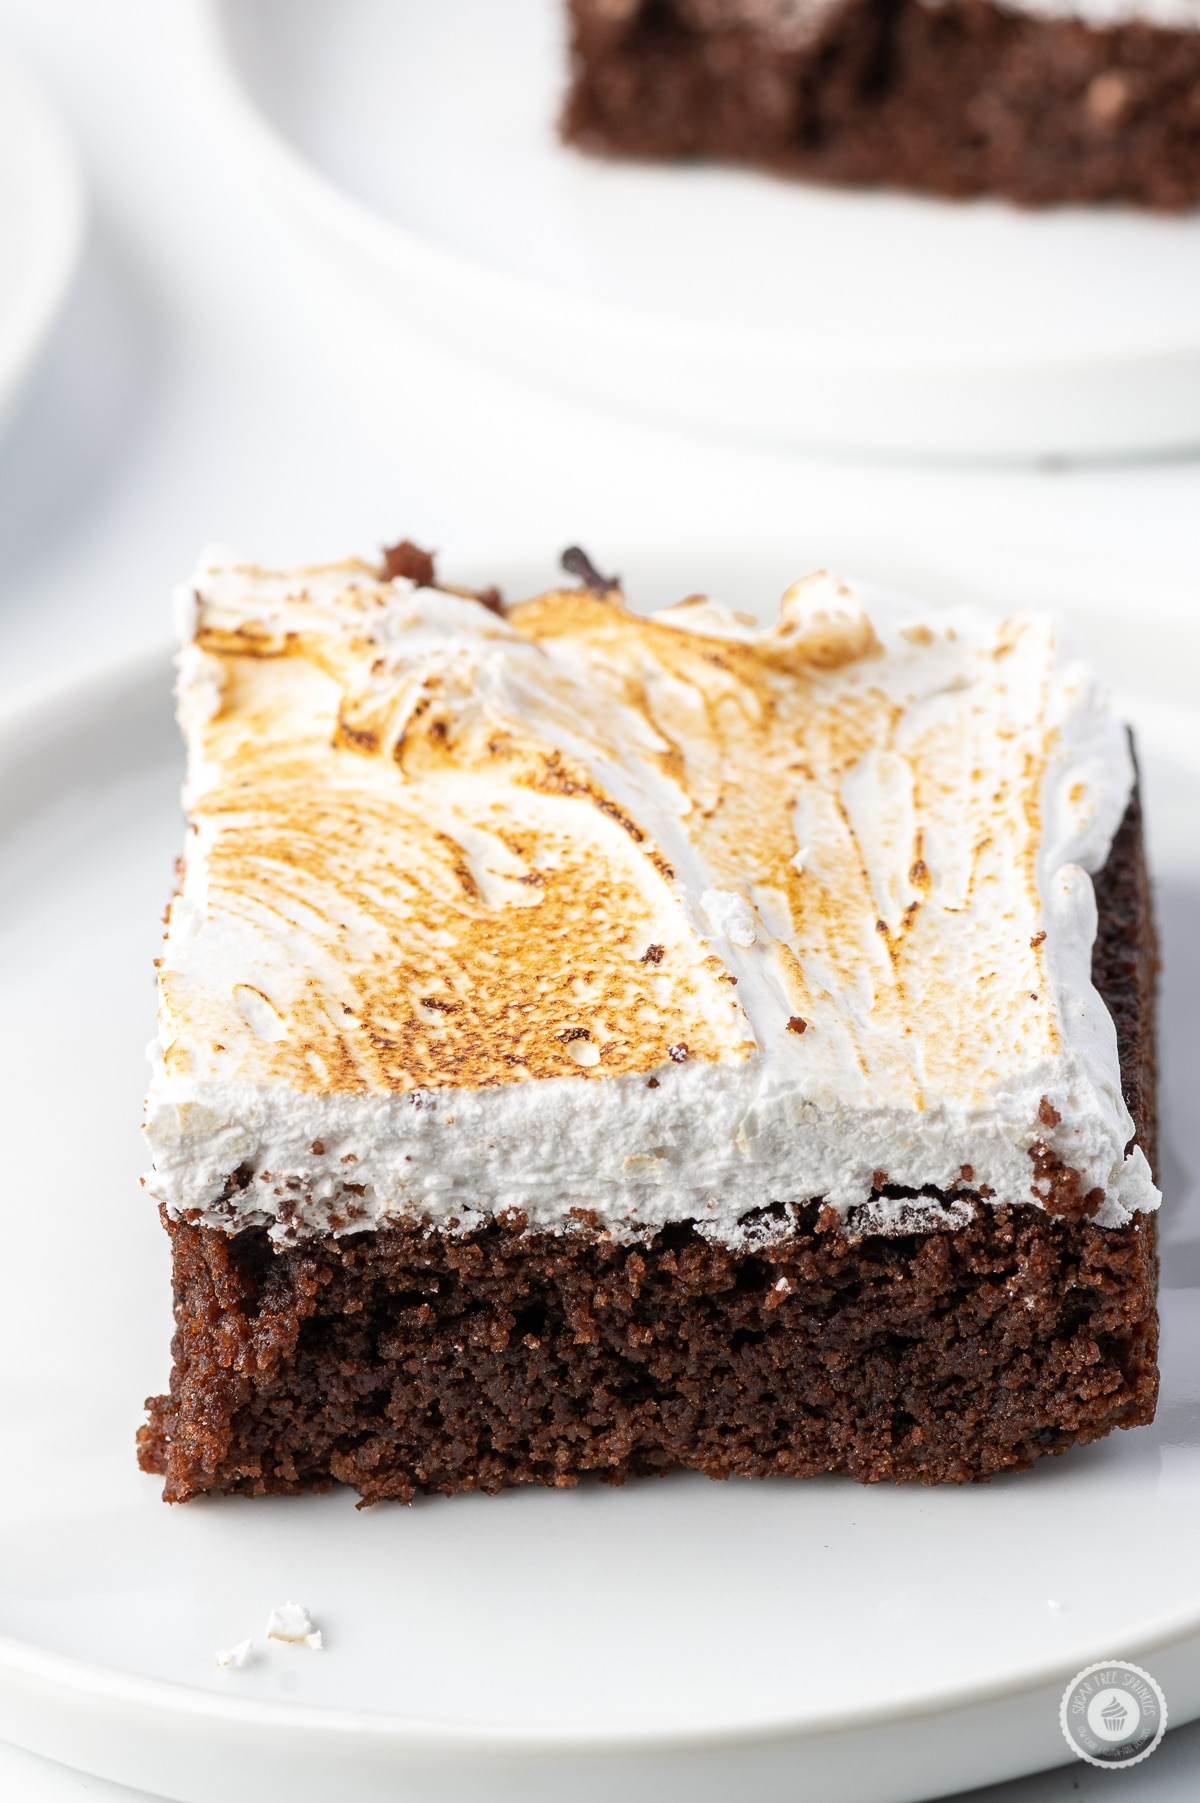 A single slice of low carb smores brownie on a bright white plate